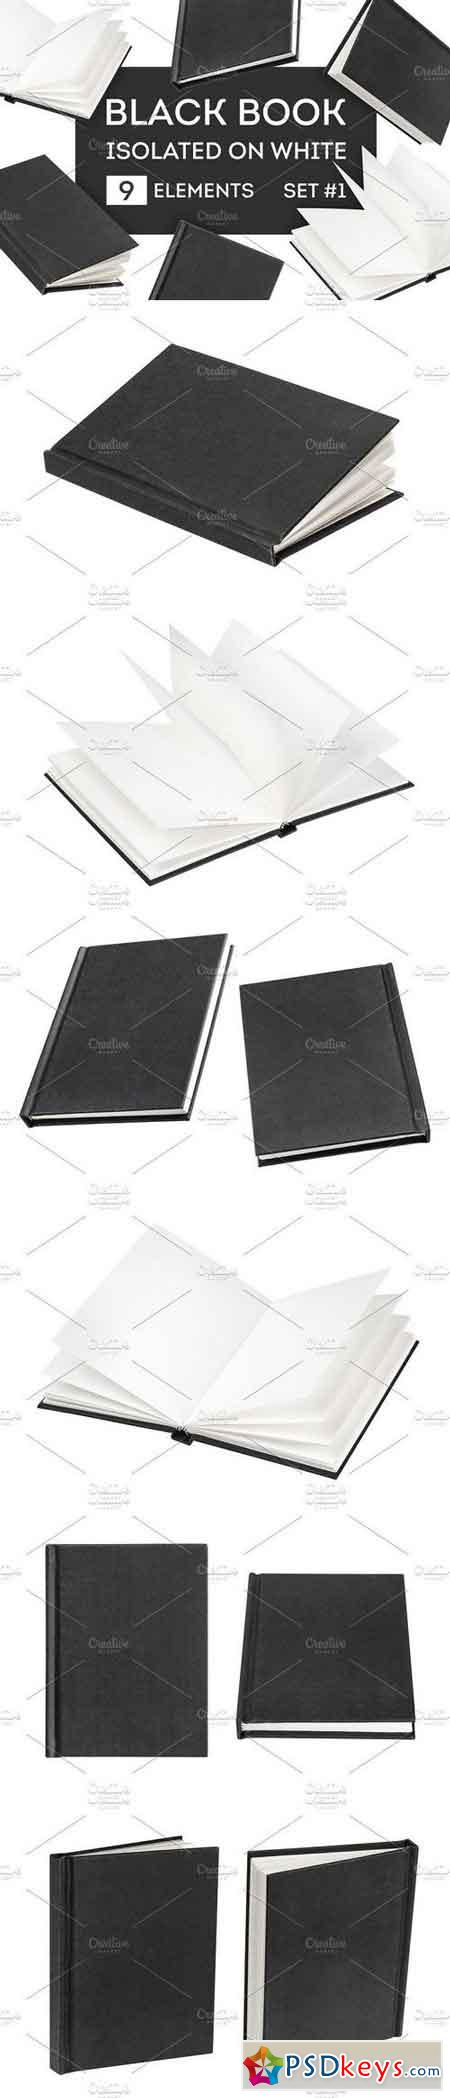 Black book mock-up isolated on white 1274525